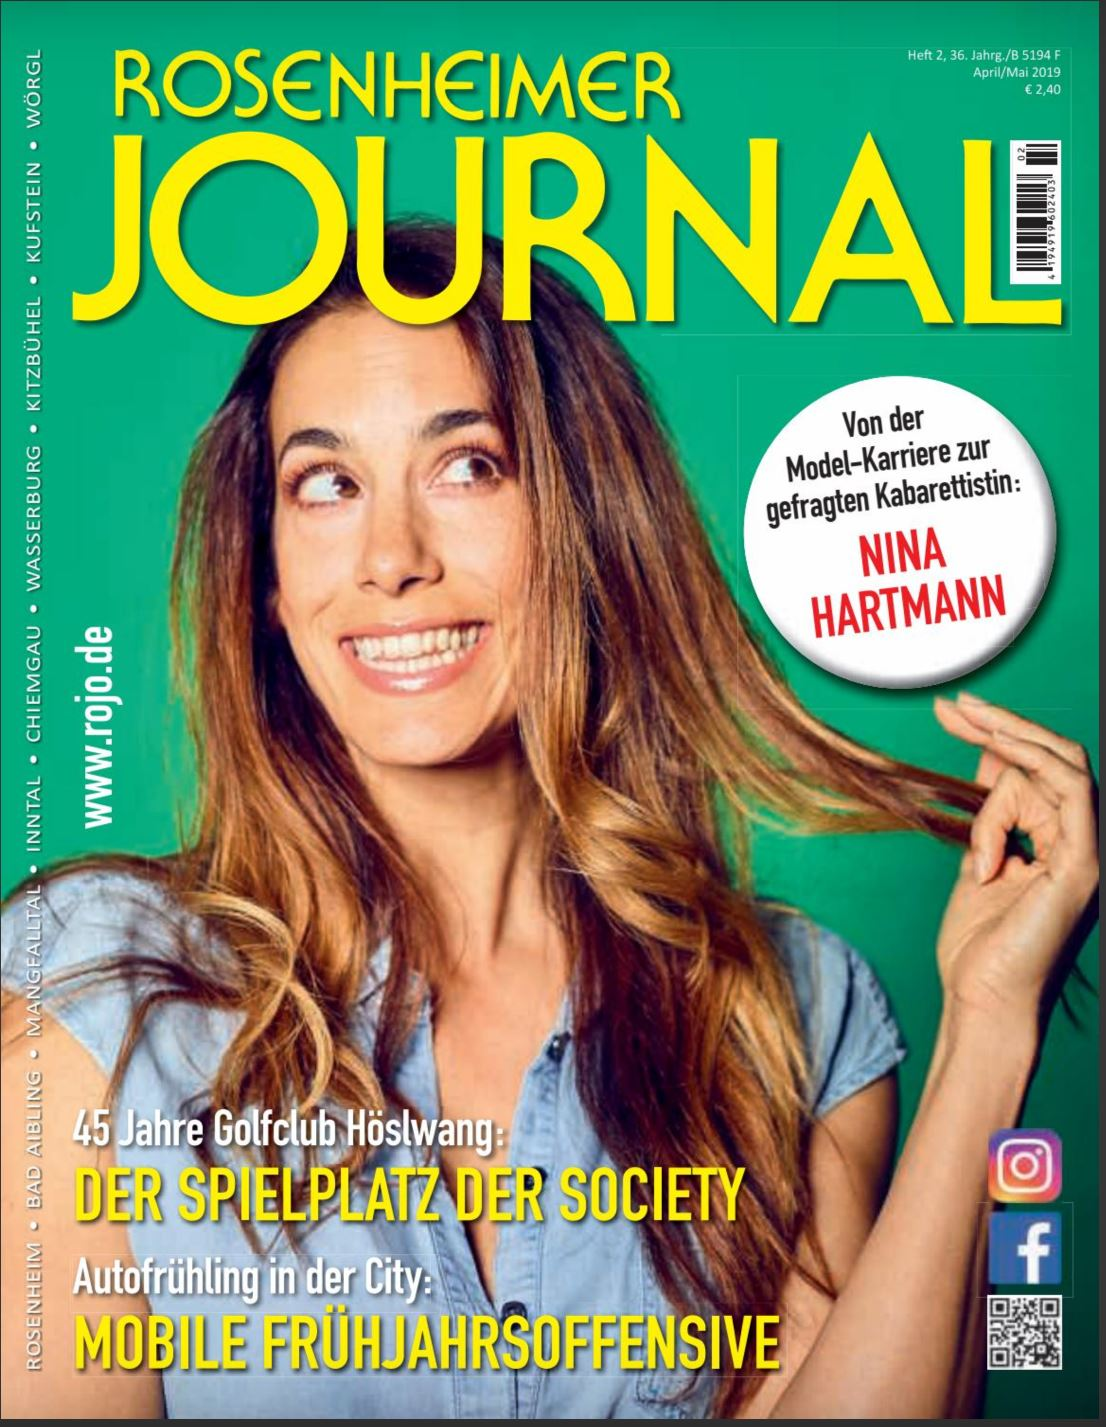 Rosenheimer Journal Titelseite April-Mai 2019